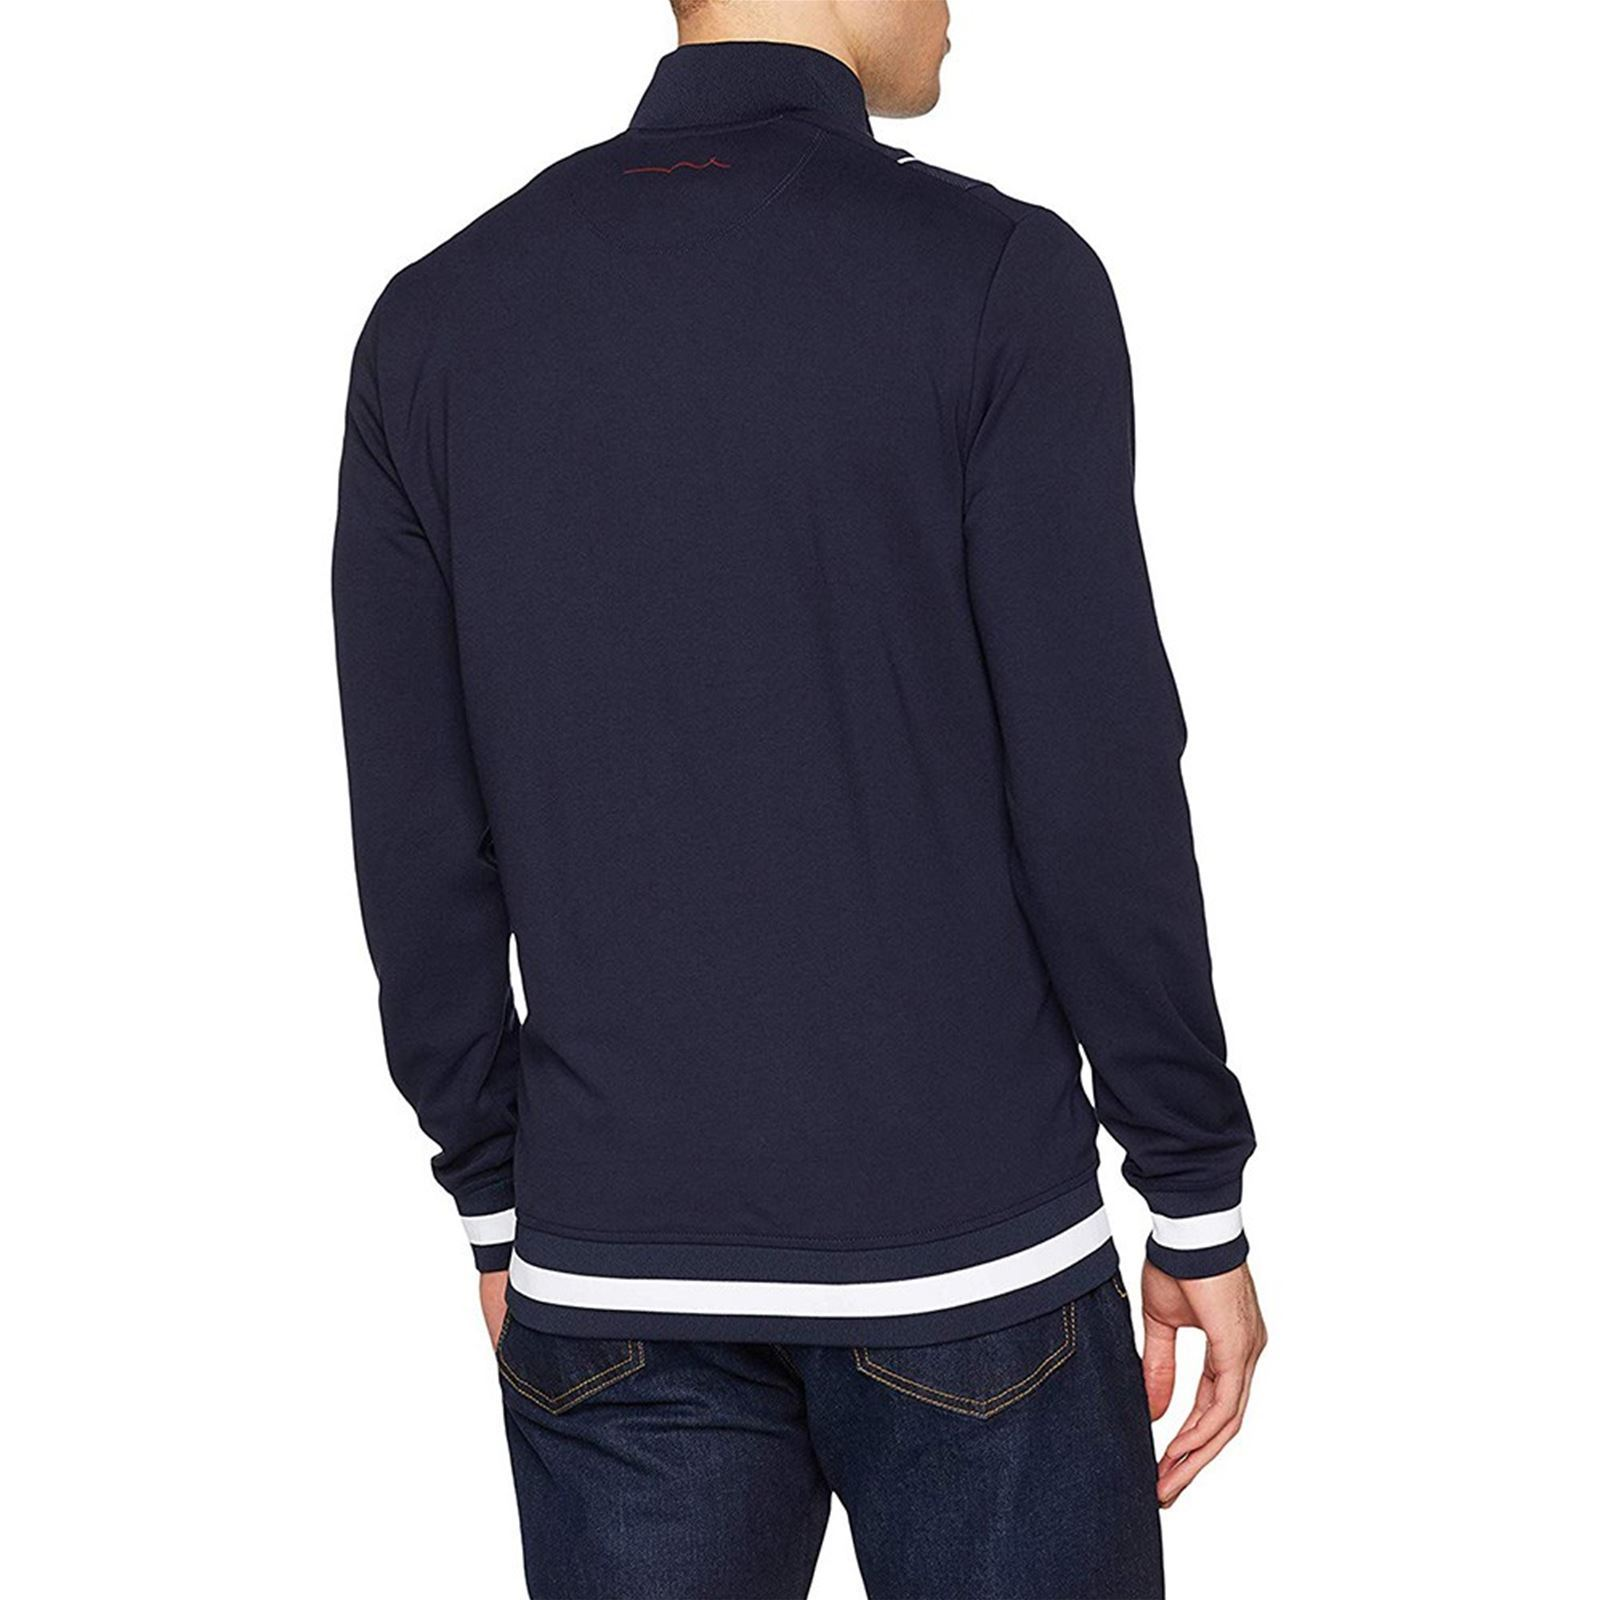 V Homme Teddy Smith shirtBleu Sweat cj4A35qRL